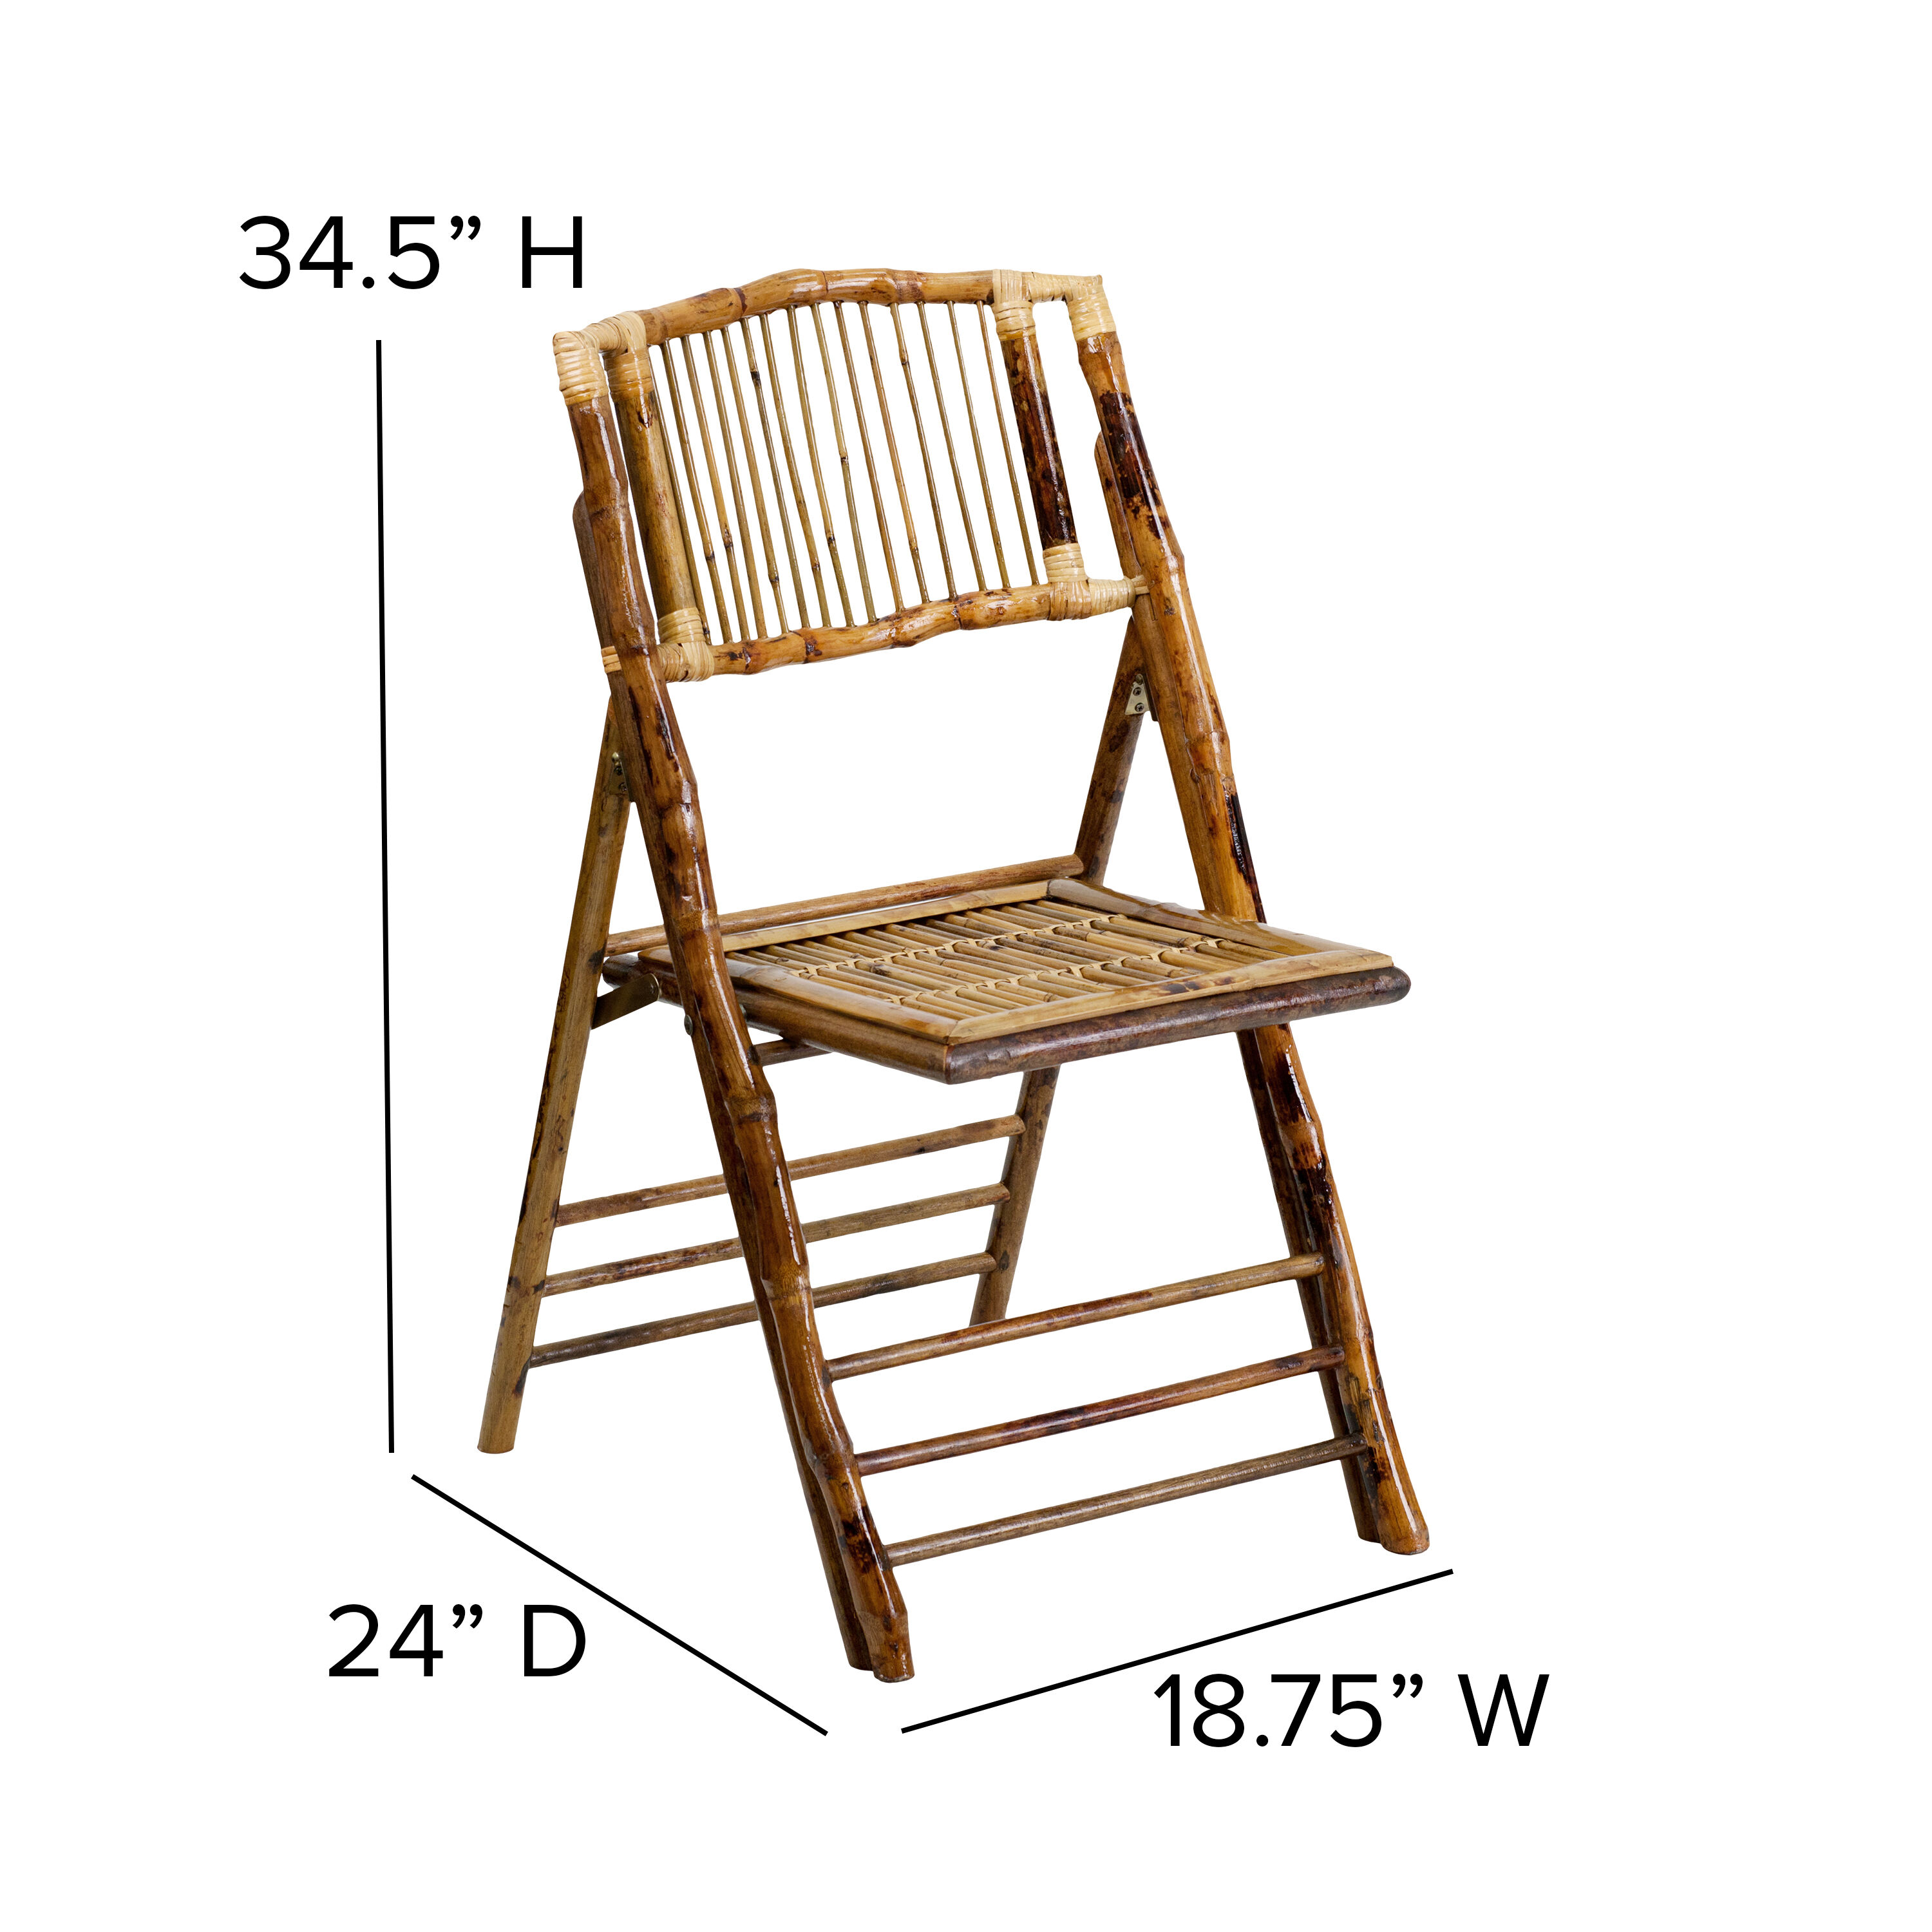 Bamboo Chairs Bamboo Folding Chair X 62111 Bam Gg Foldingchairs4less